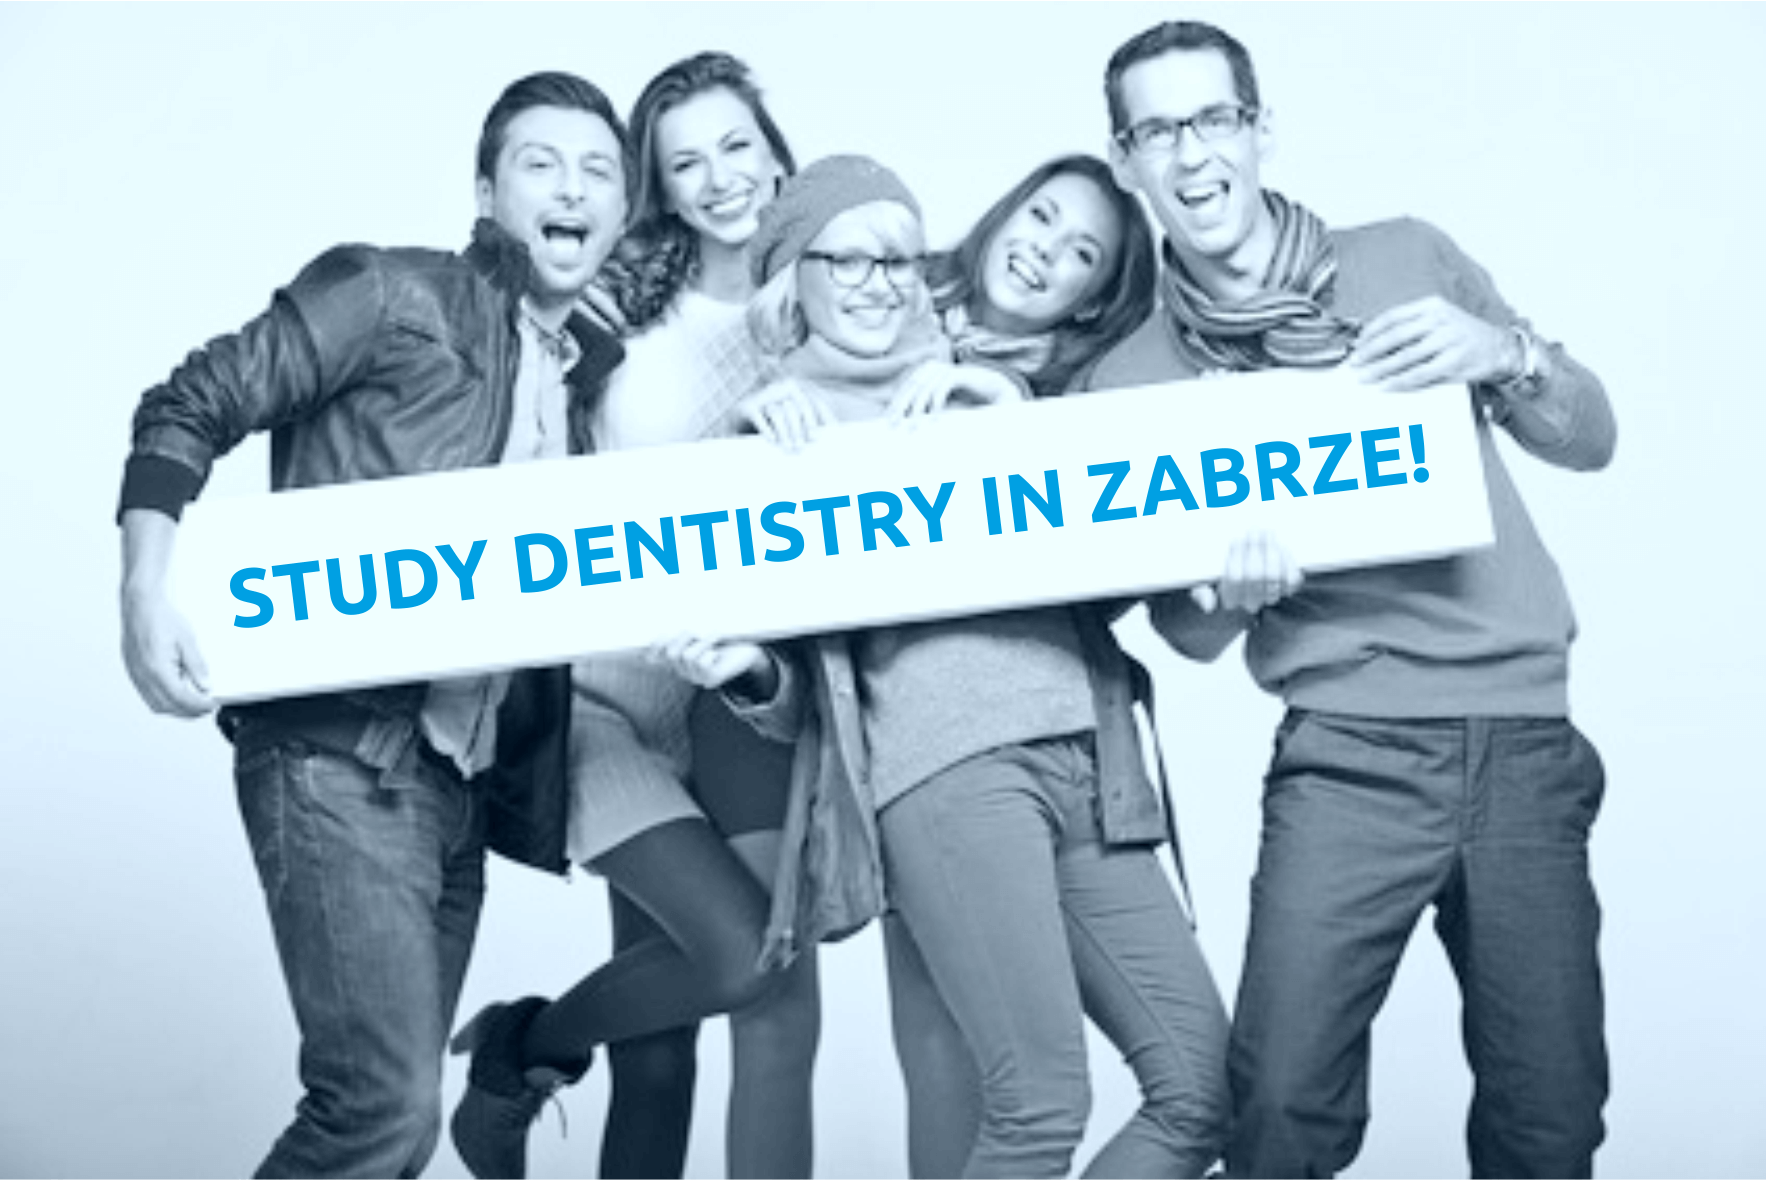 STUDY DENTISTRY IN ZABRZE BLUE